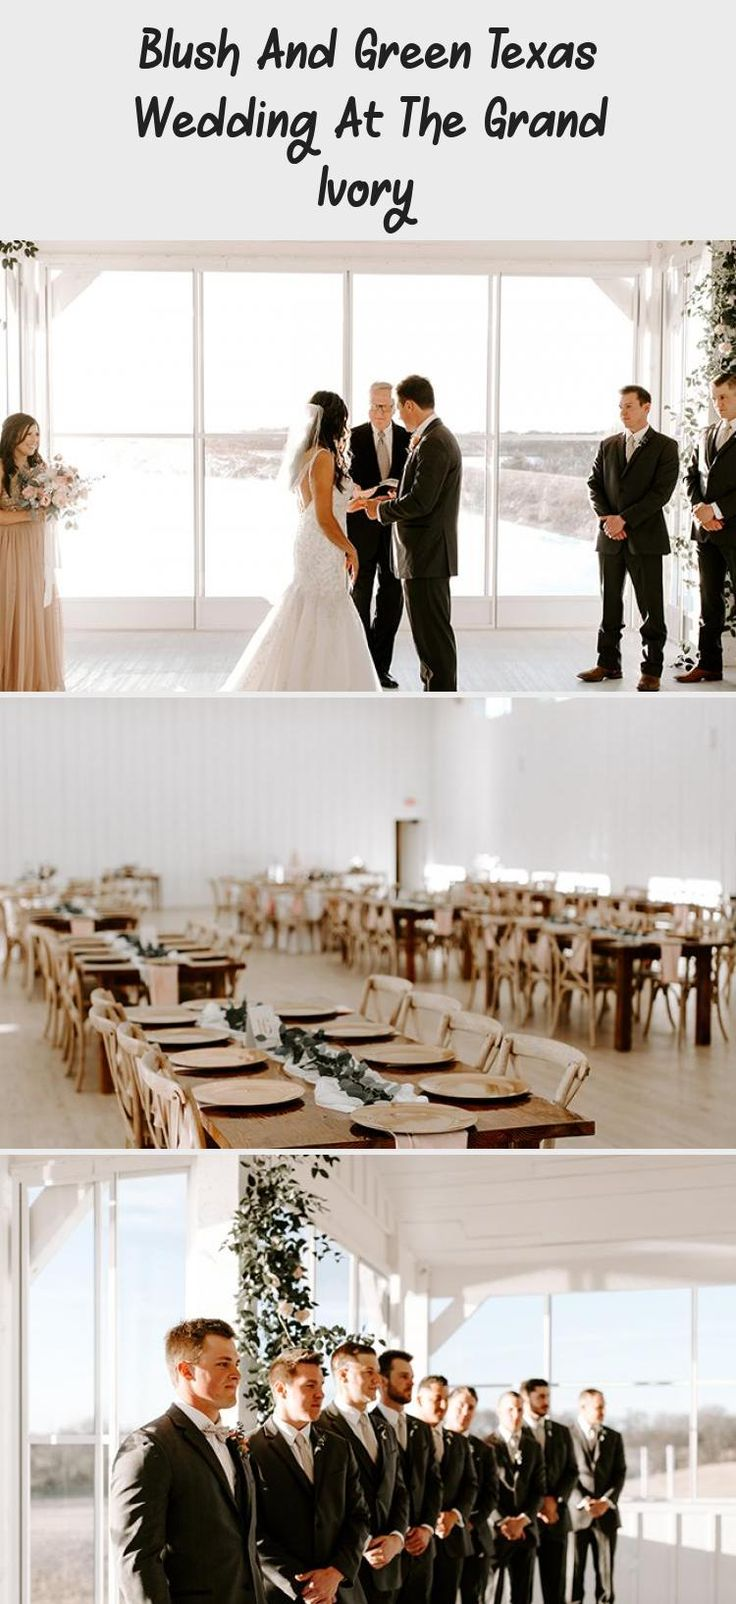 Blush and Green Texas Wedding at The Grand Ivory - Inspired By This #weddingplanner #BridesmaidDressesWithSleeves #GrayBridesmaidDresses #LilacBridesmaidDresses #CasualBridesmaidDresses #BridesmaidDresses2018